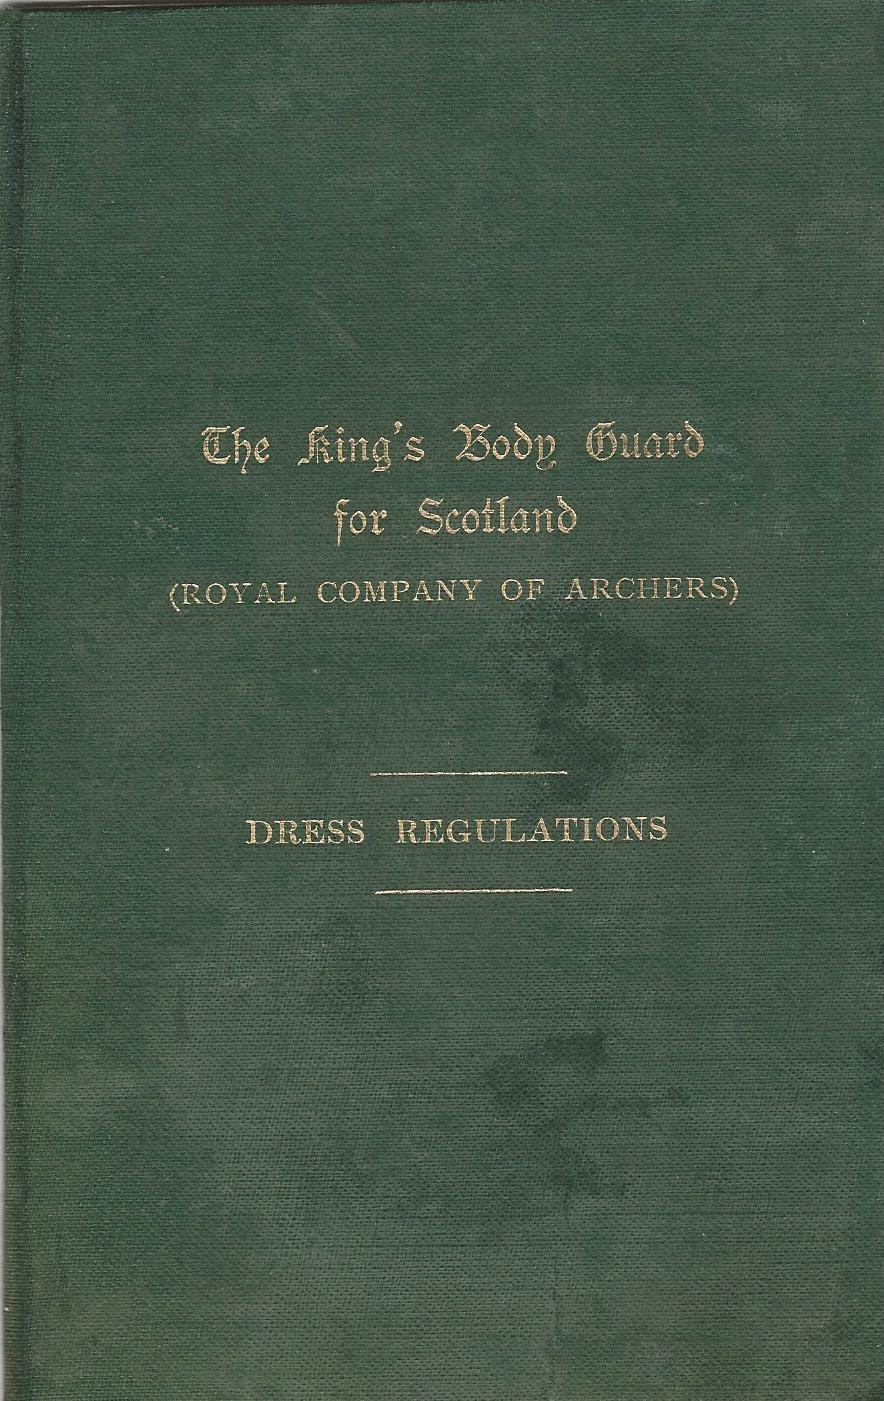 Image for The King's Body Guard for Scotland (Royal Company of Archers) Dress Regulations.